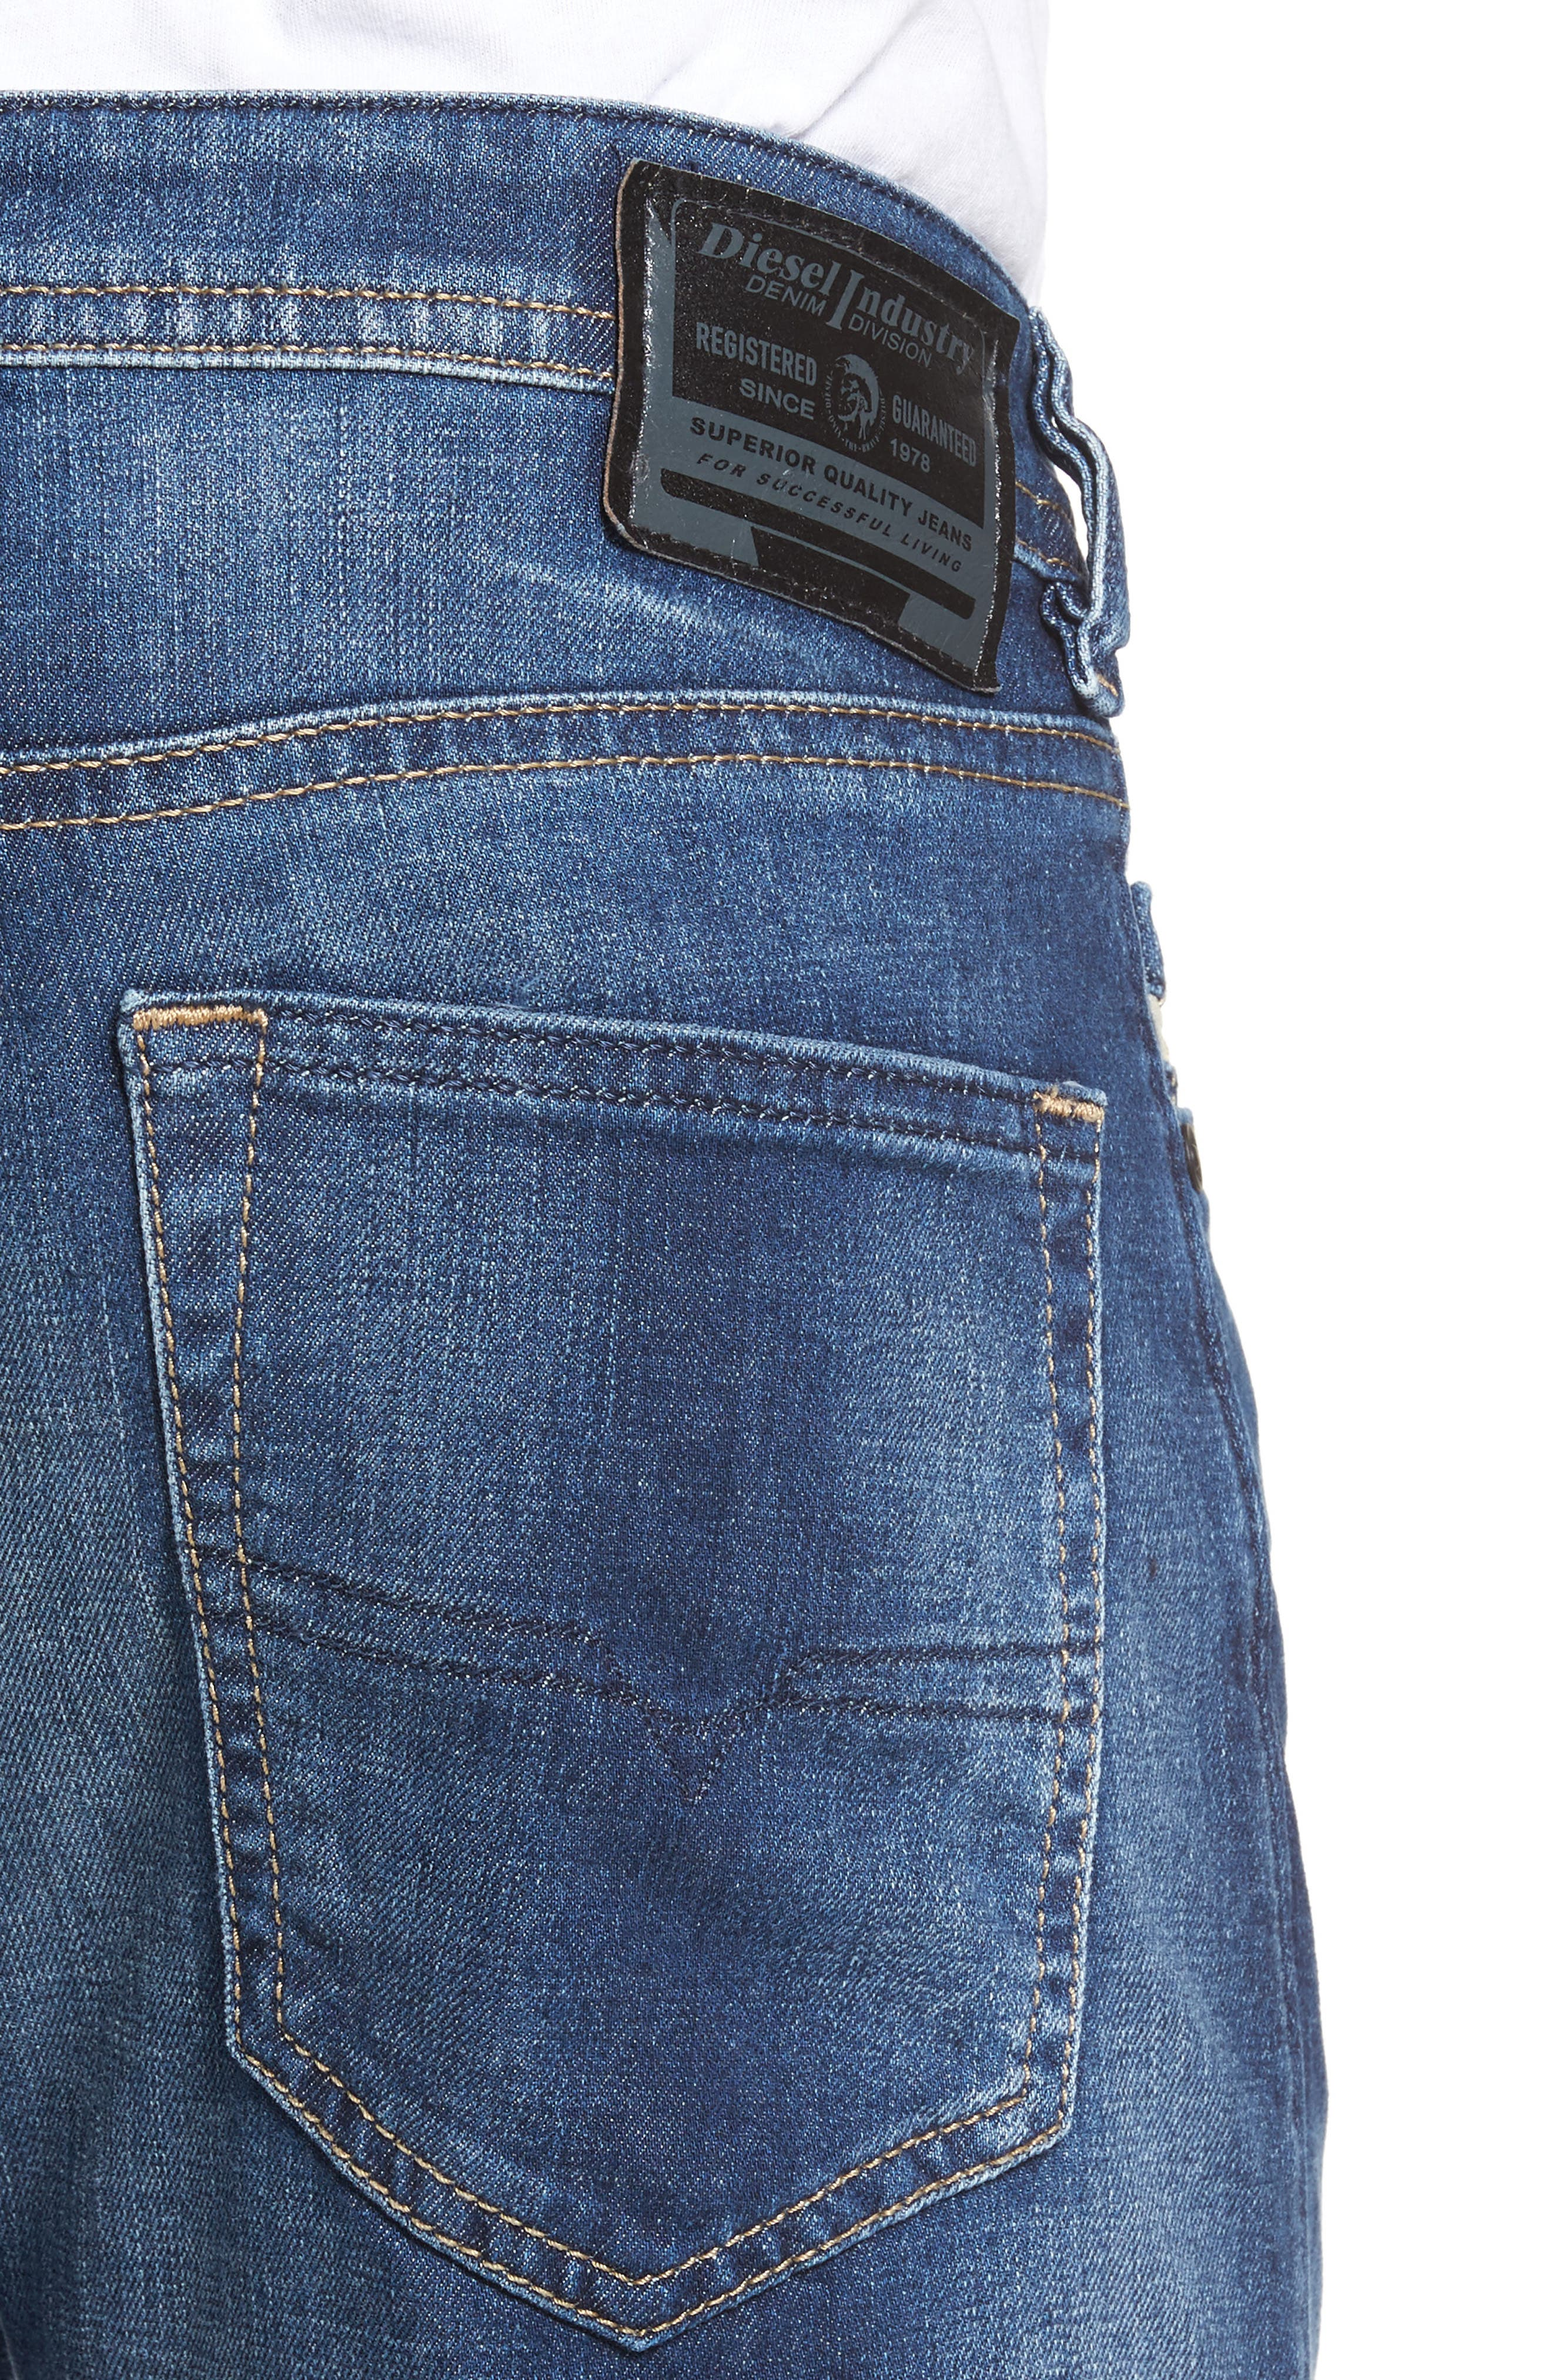 Buster Slim Straight Leg Jeans,                             Alternate thumbnail 4, color,                             084Gr